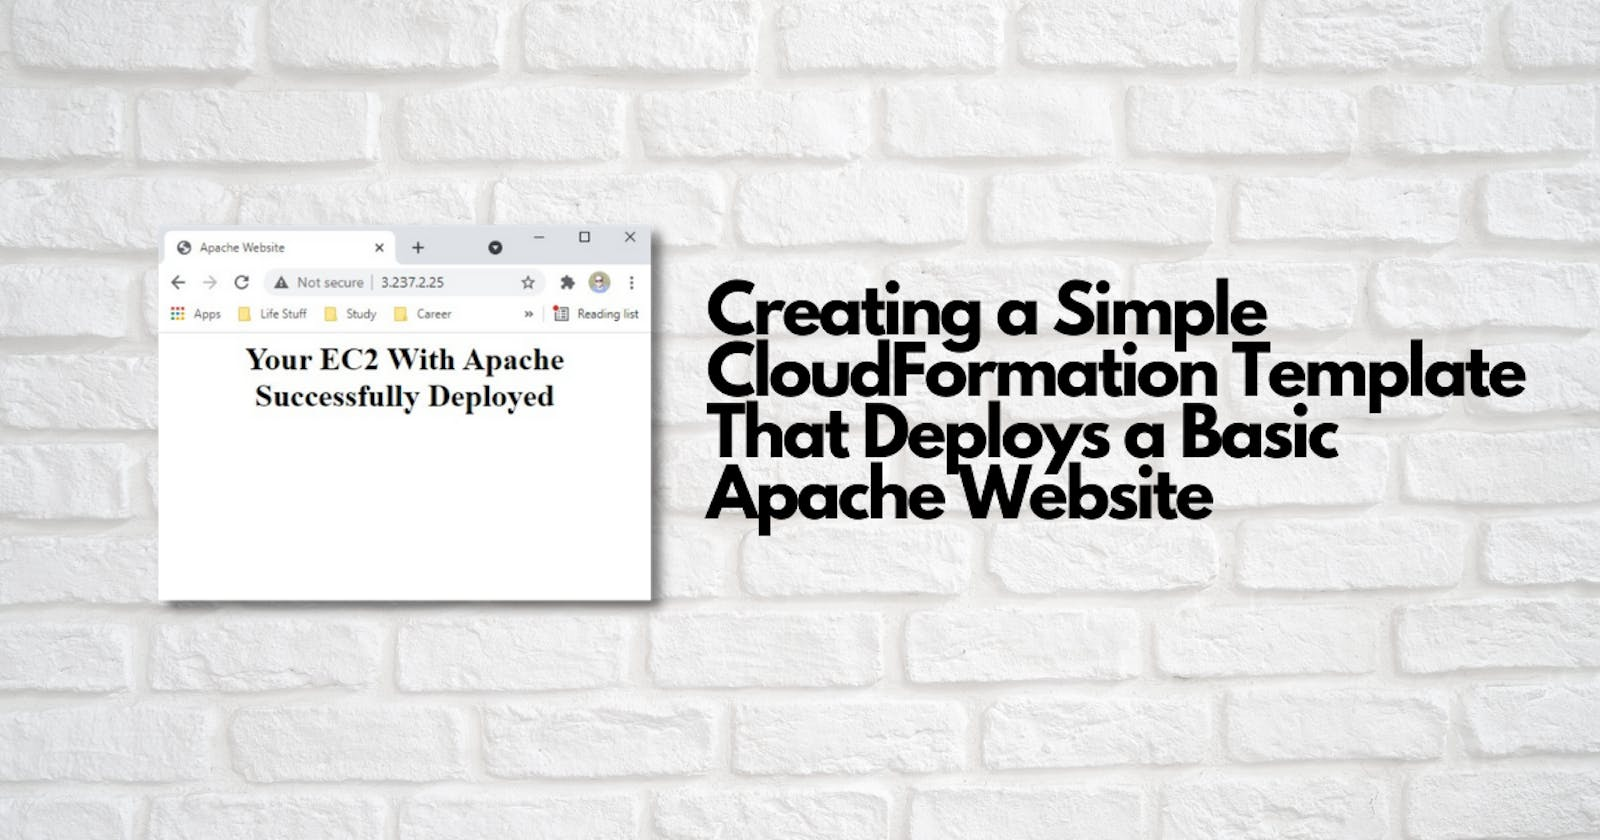 Creating a Simple CloudFormation Template That Deploys a Basic Apache Website